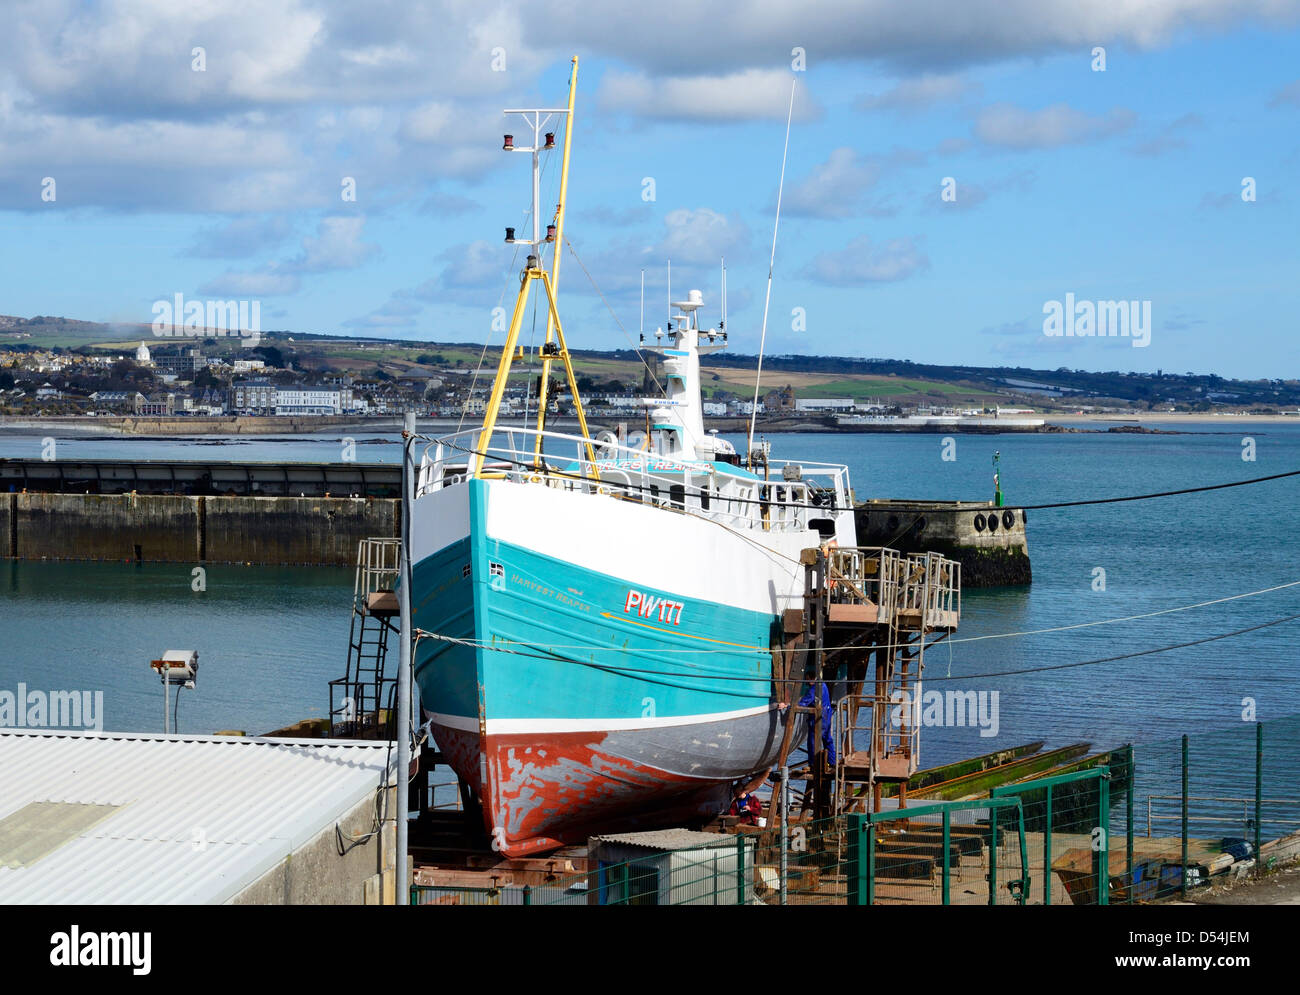 A fishing trawler in dry dock for repairs at Newlyn, Cornwall, UK - Stock Image